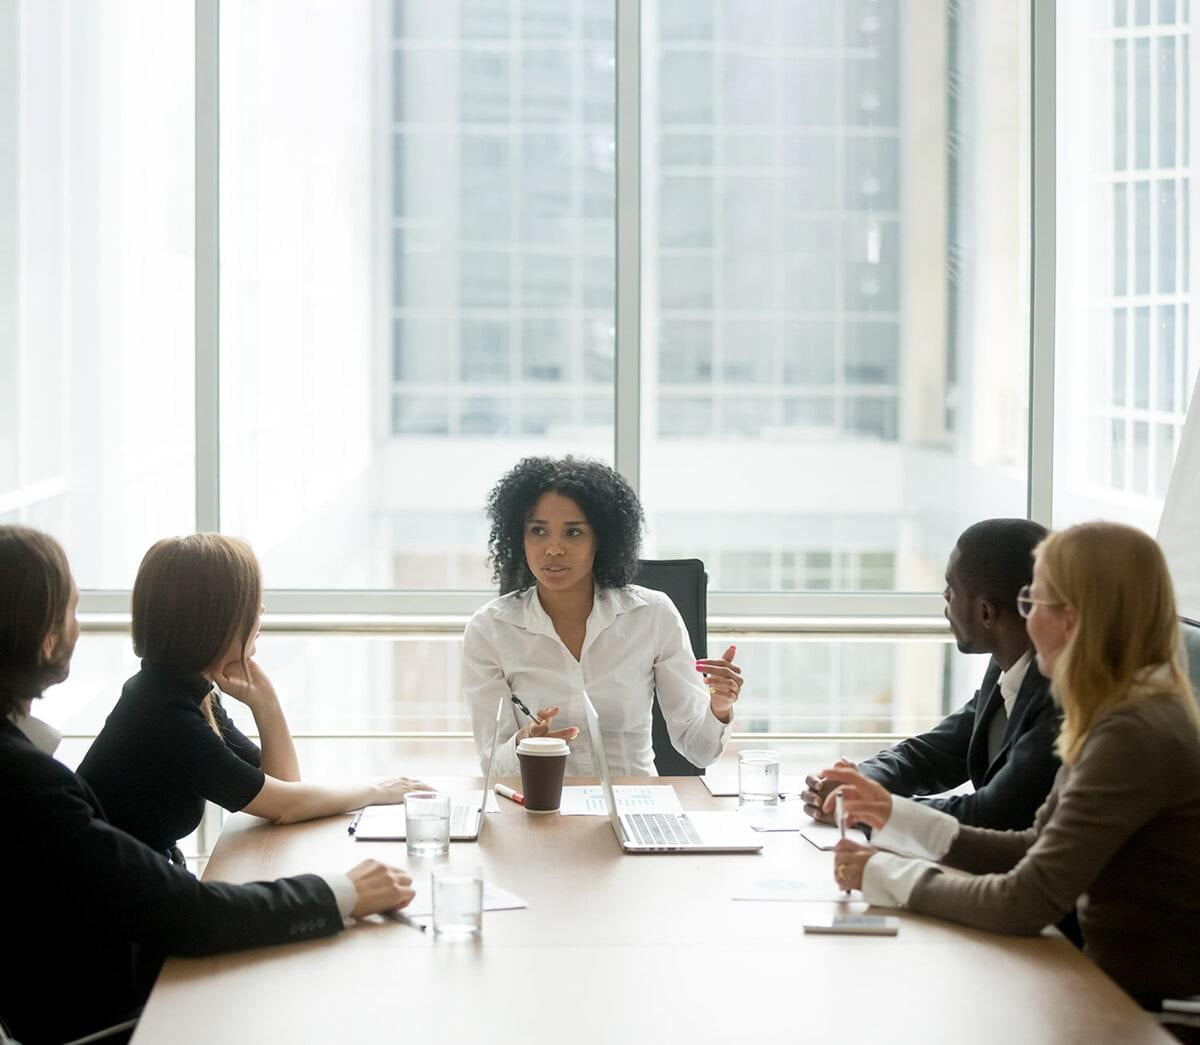 Young woman leading a business meeting